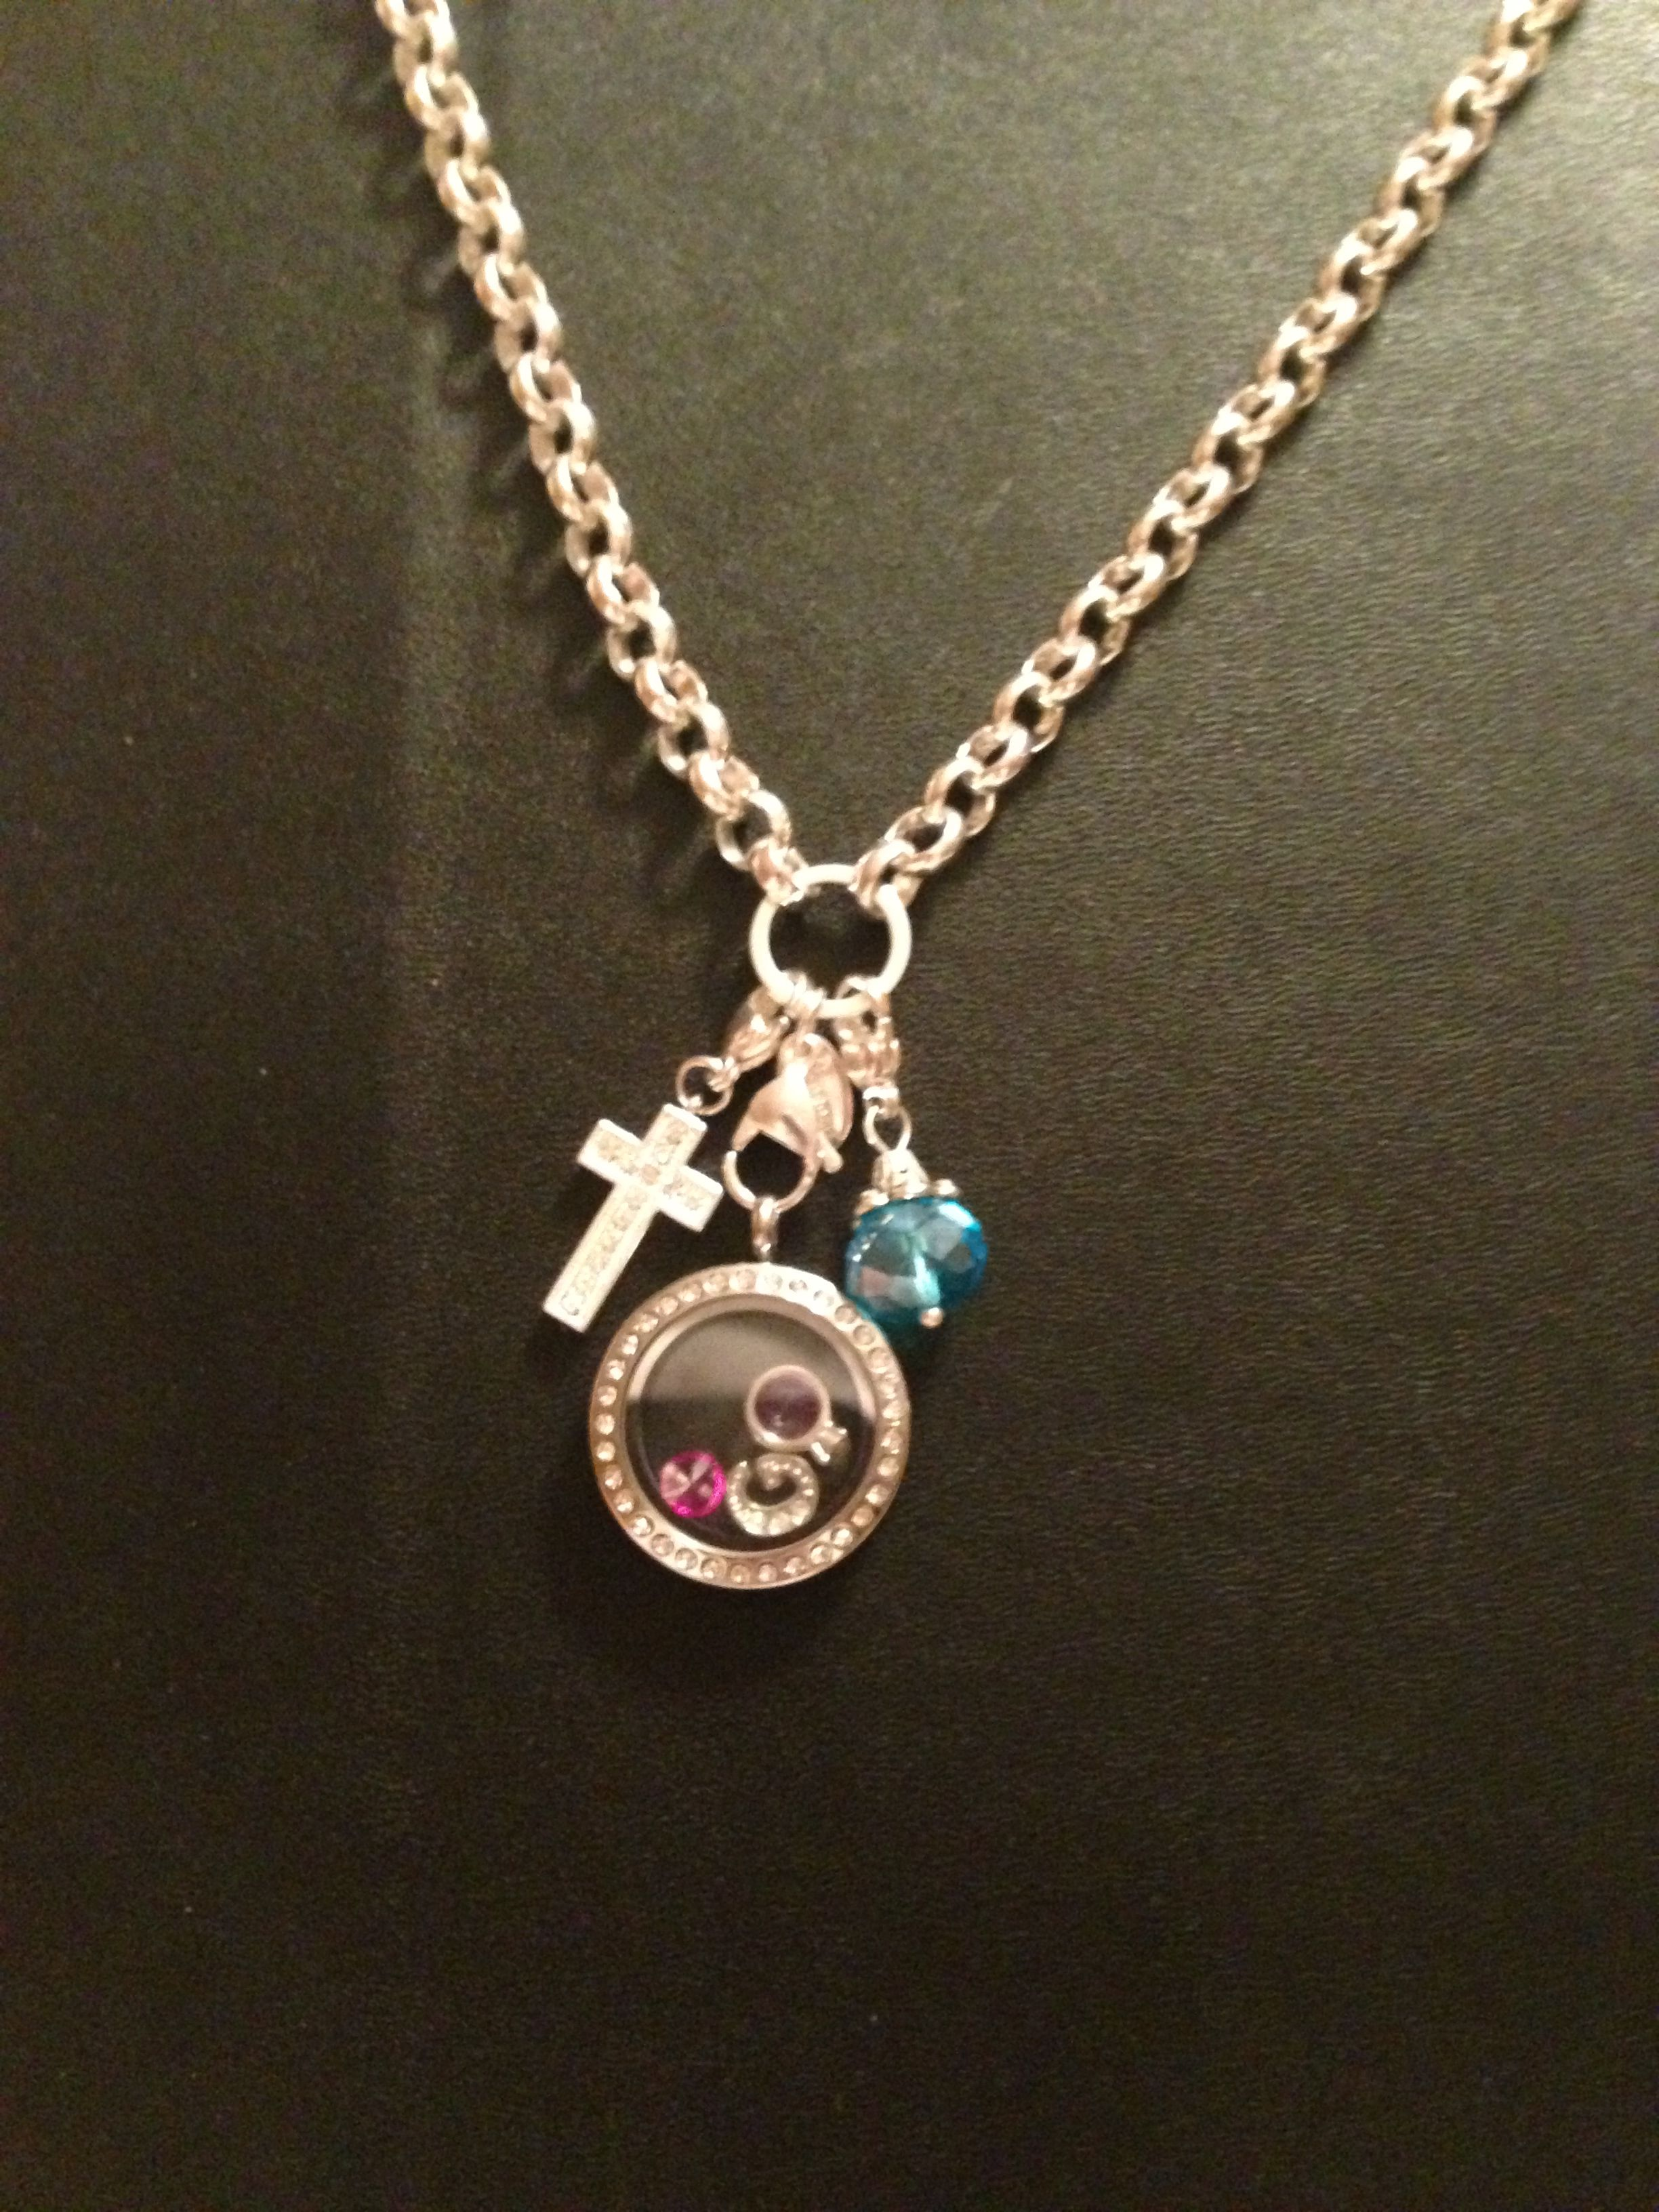 My origami owl necklace | OO | Pinterest - photo#11